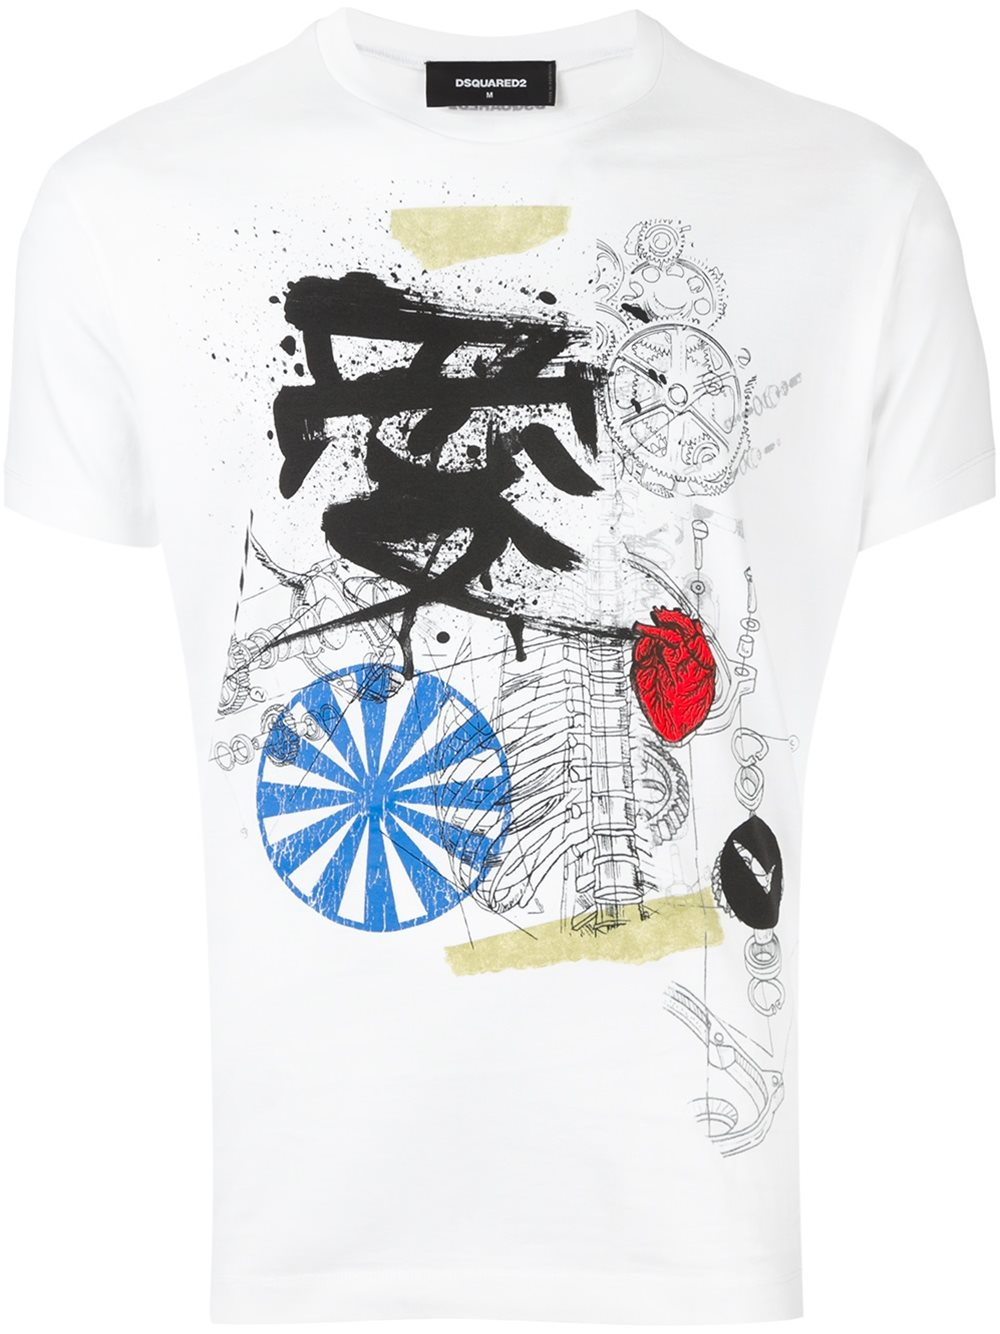 Dsquared mechanical sketch t shirt in white for men lyst for Mechanical logos for t shirts